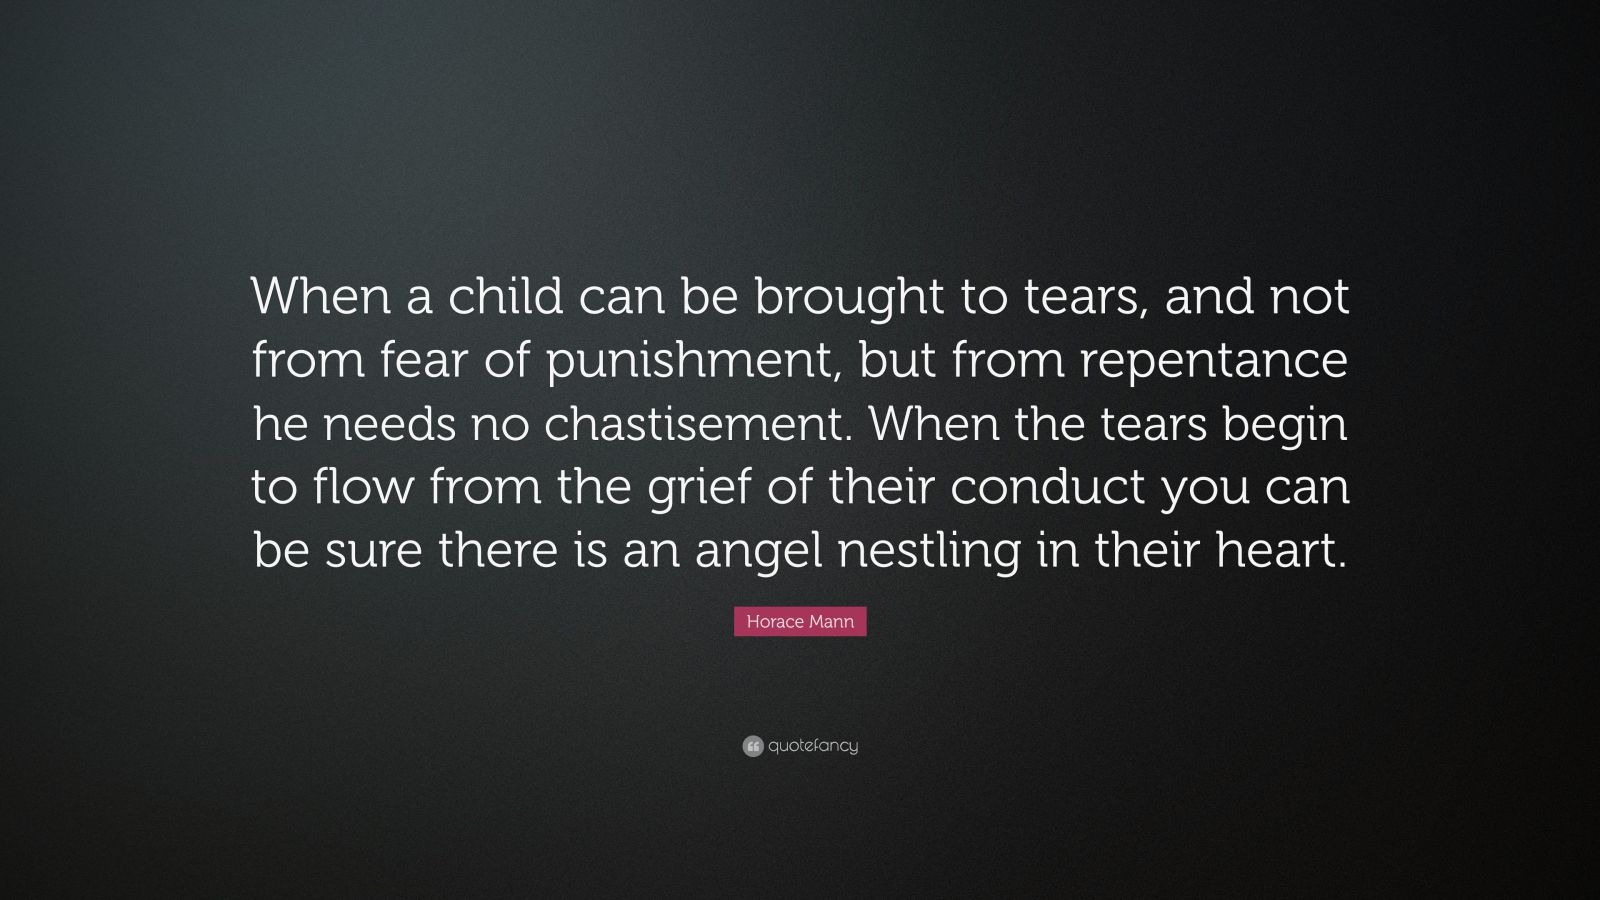 """Horace Mann Quote: """"When a child can be brought to tears, and not from fear of punishment, but from repentance he needs no chastisement. When the tears begin to flow from the grief of their conduct you can be sure there is an angel nestling in their heart."""""""